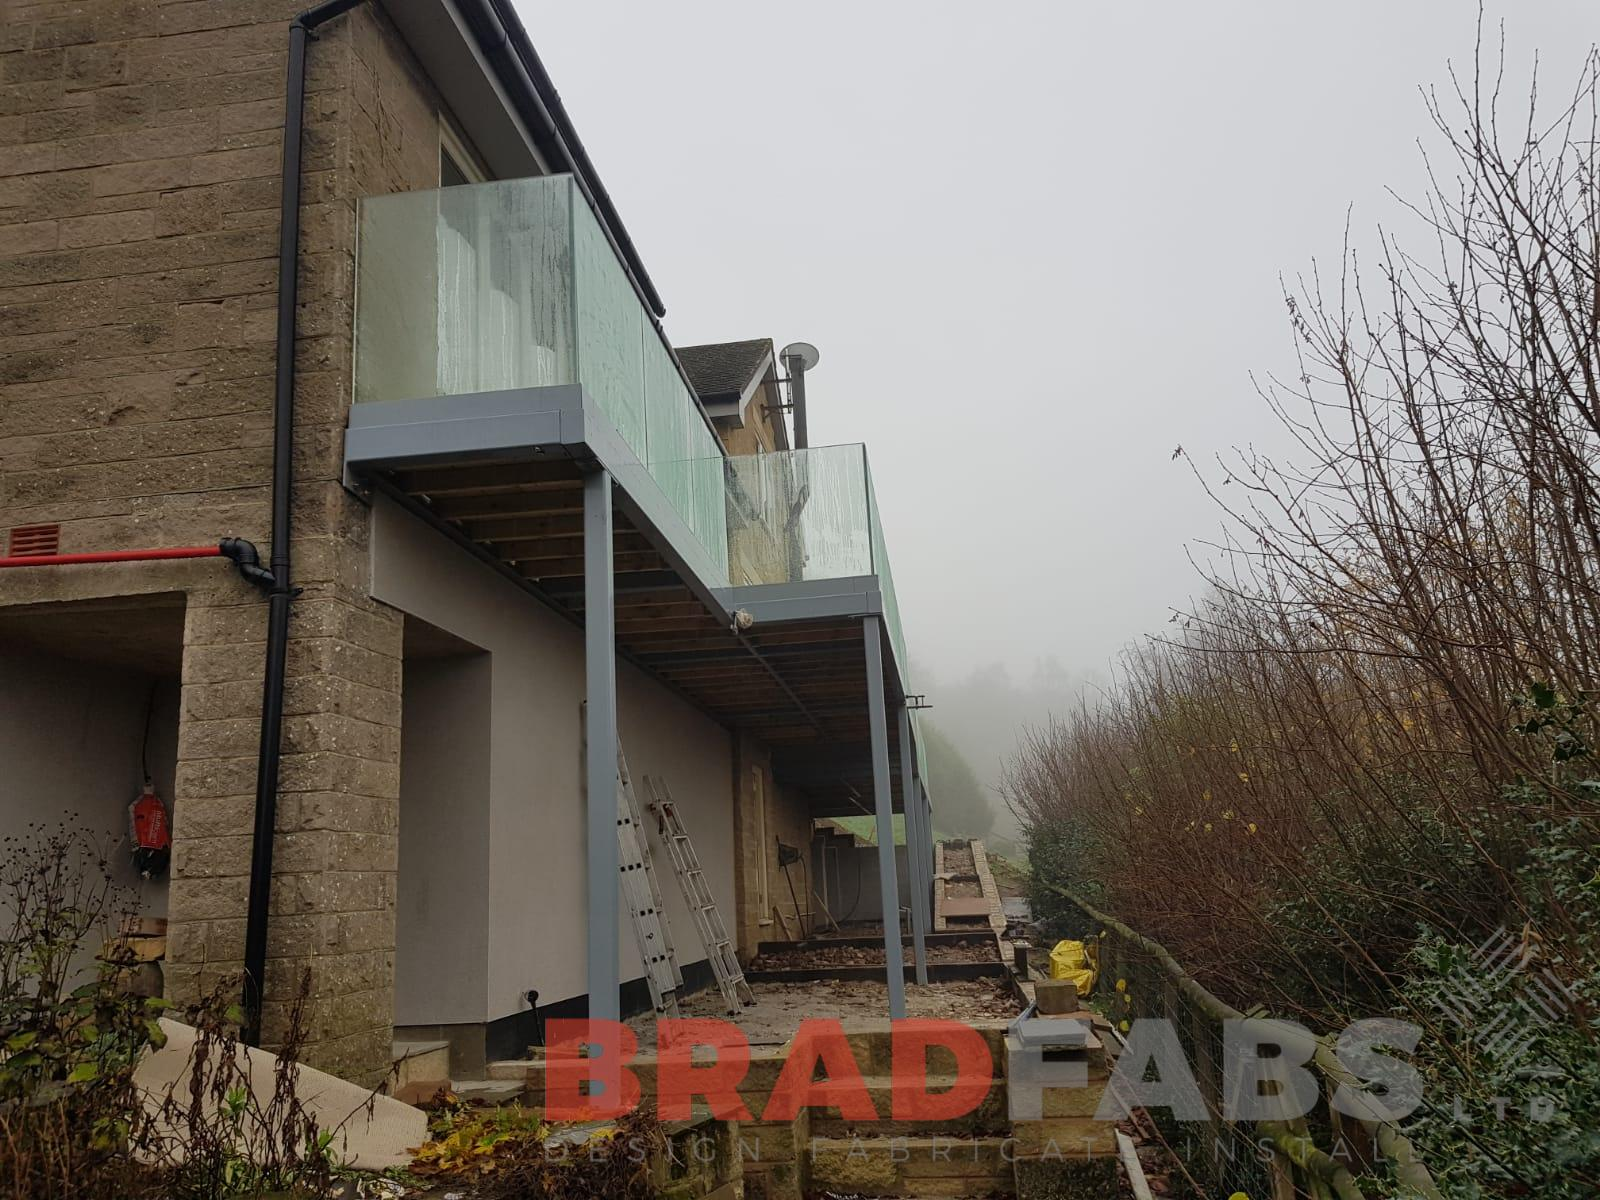 Mild Steel, Galvanised, Powdercoated, infinity glass balustrade, milboard decking, modern, professional, high standard.